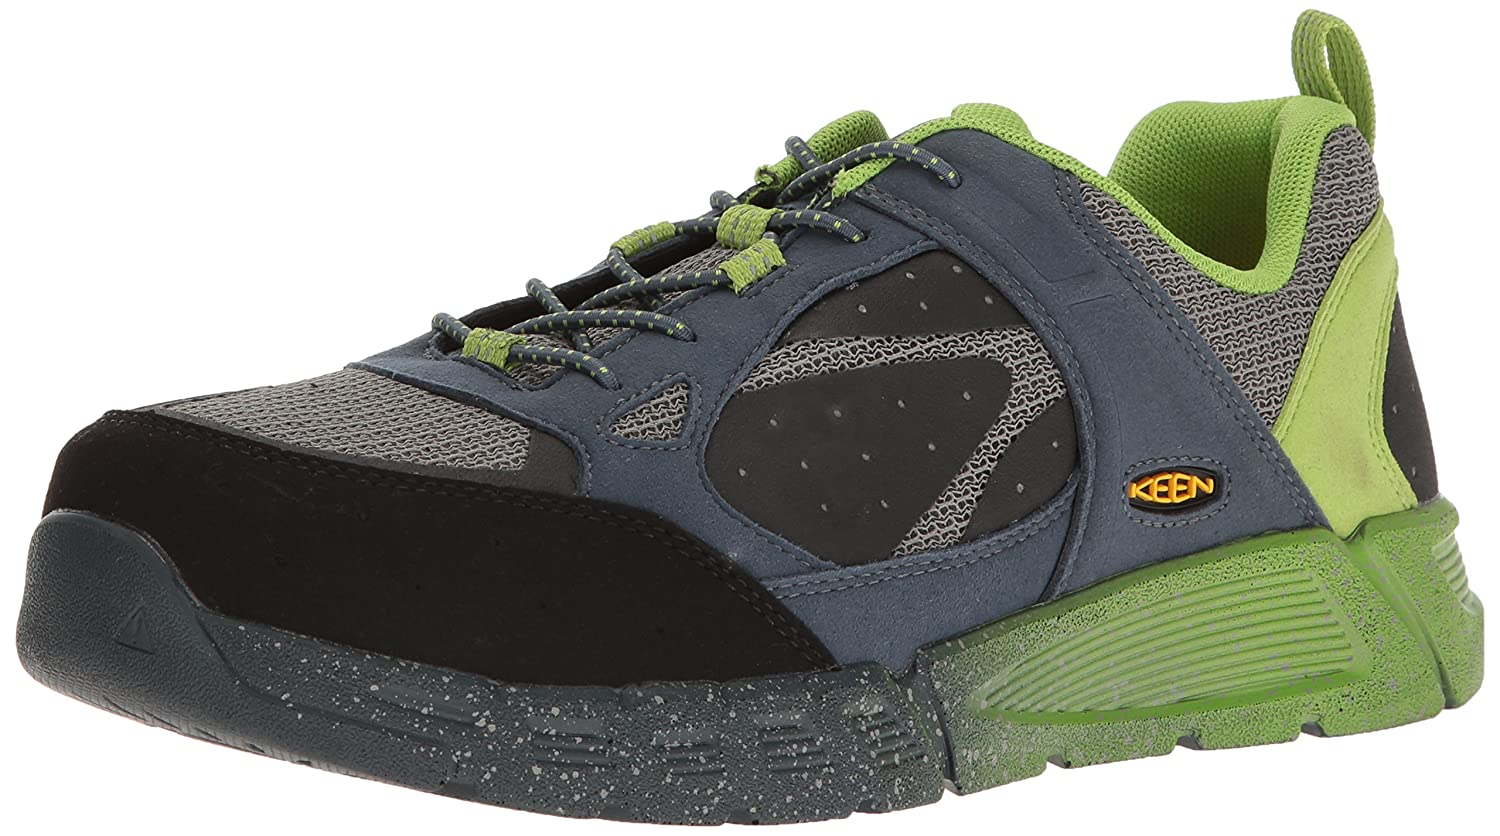 KEEN Utility メンズ B01J27FOV6 9.5 D(M) US|Neutral Grey/Greenery Neutral Grey/Greenery 9.5 D(M) US